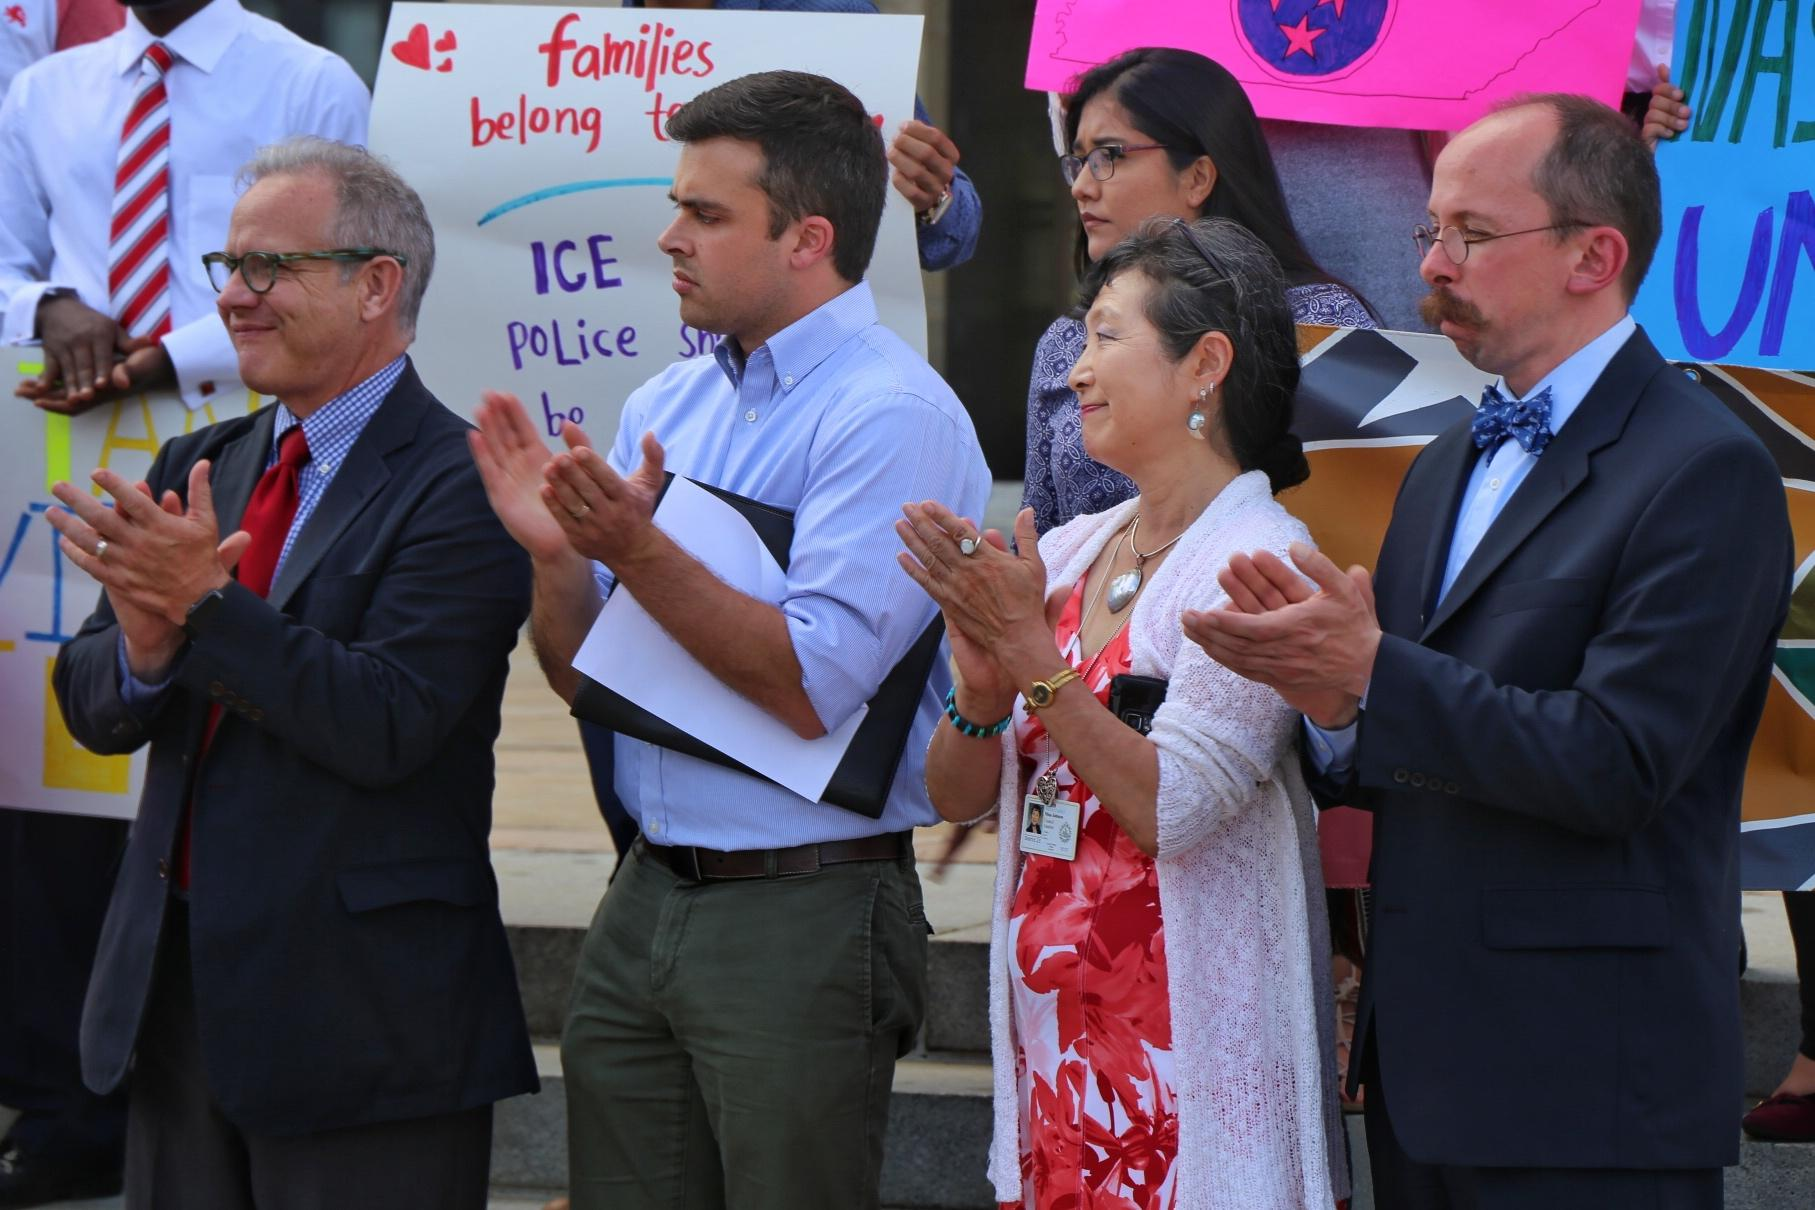 Texas lawmakers scuffle after state rep calls ICE on protesters